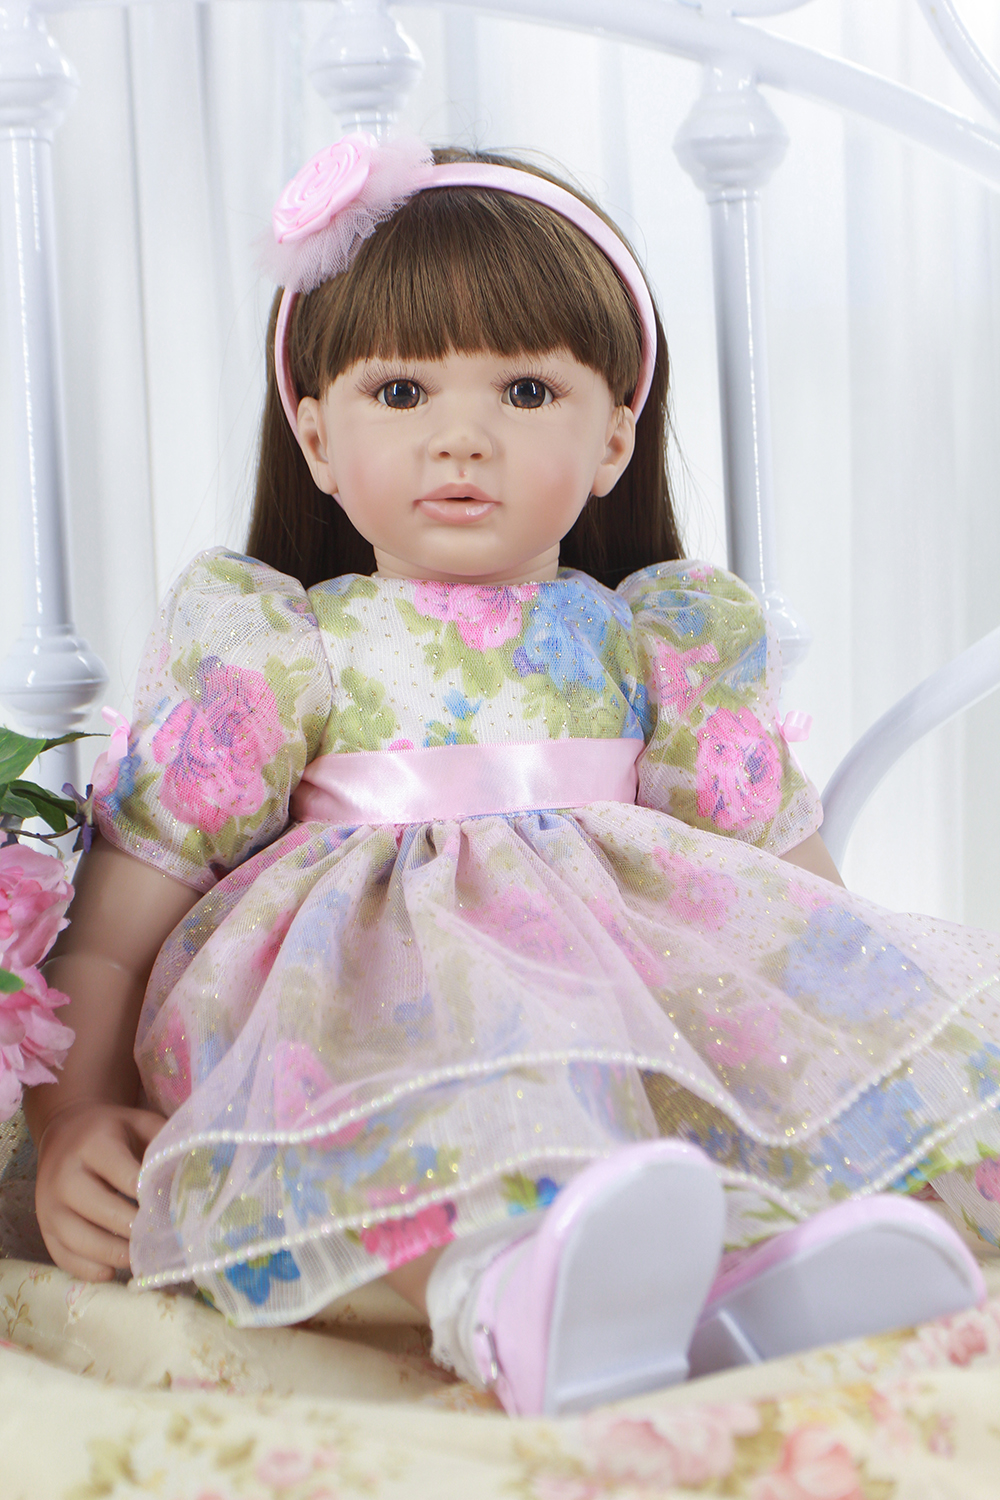 Pursue 24/60 cm Pink Perfect Reborn Silicone Baby Dolls that Look Real Cloth Baby Princess Girl Toddler Dolls for Girls Gift pursue 24 60 cm new pink dress real life baby dolls reborn silicone toddler princess girl dolls toys for children girl birthday